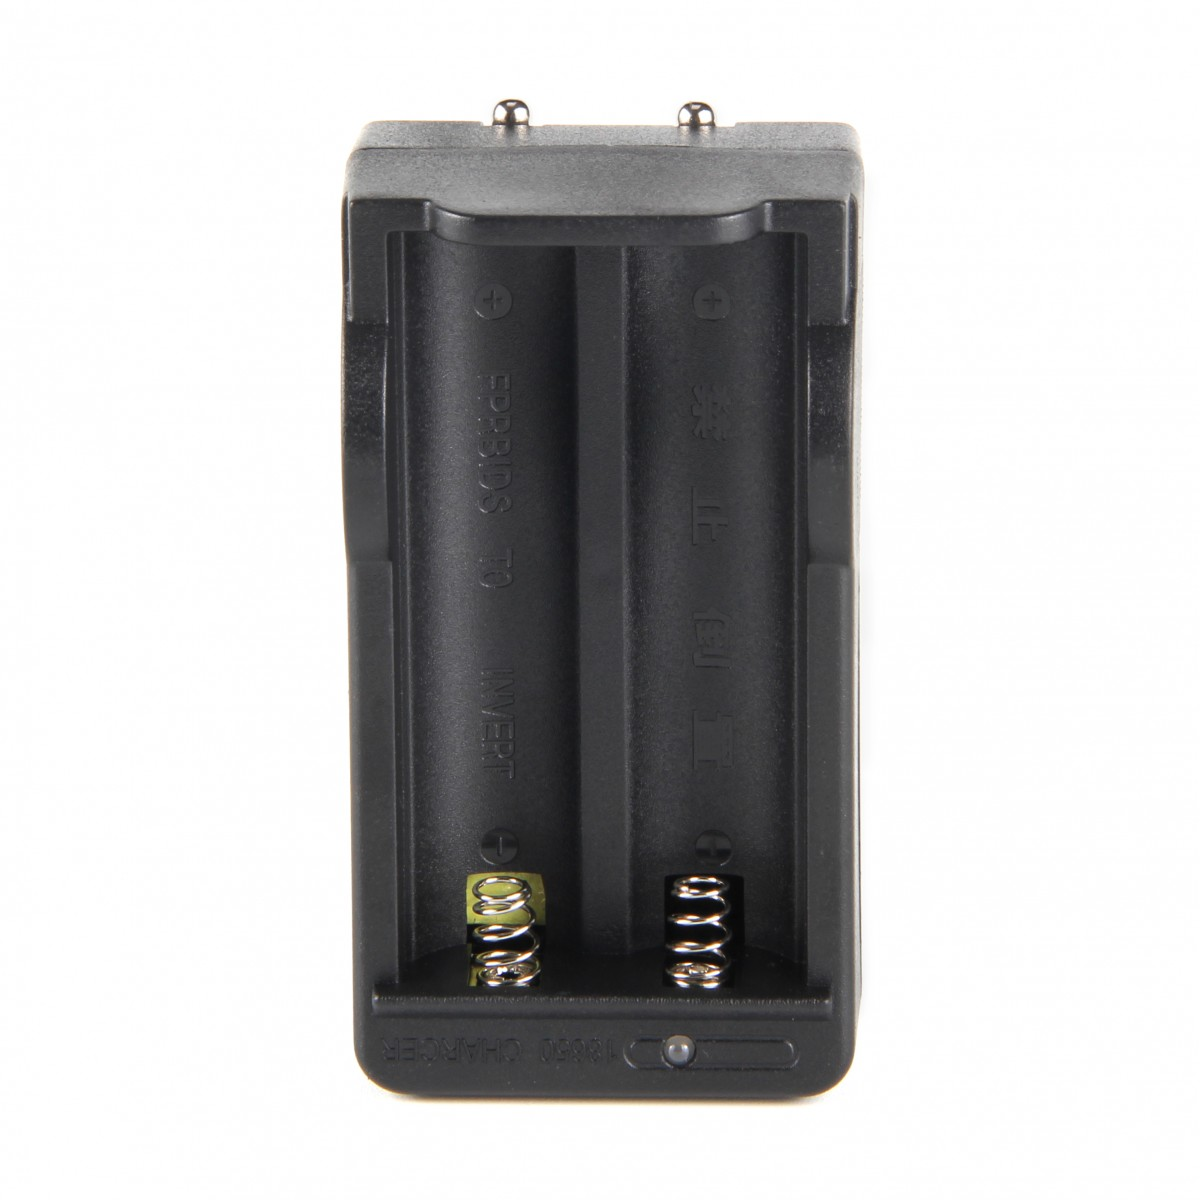 18650 lithium battery charger flashlight charger double slot - Other